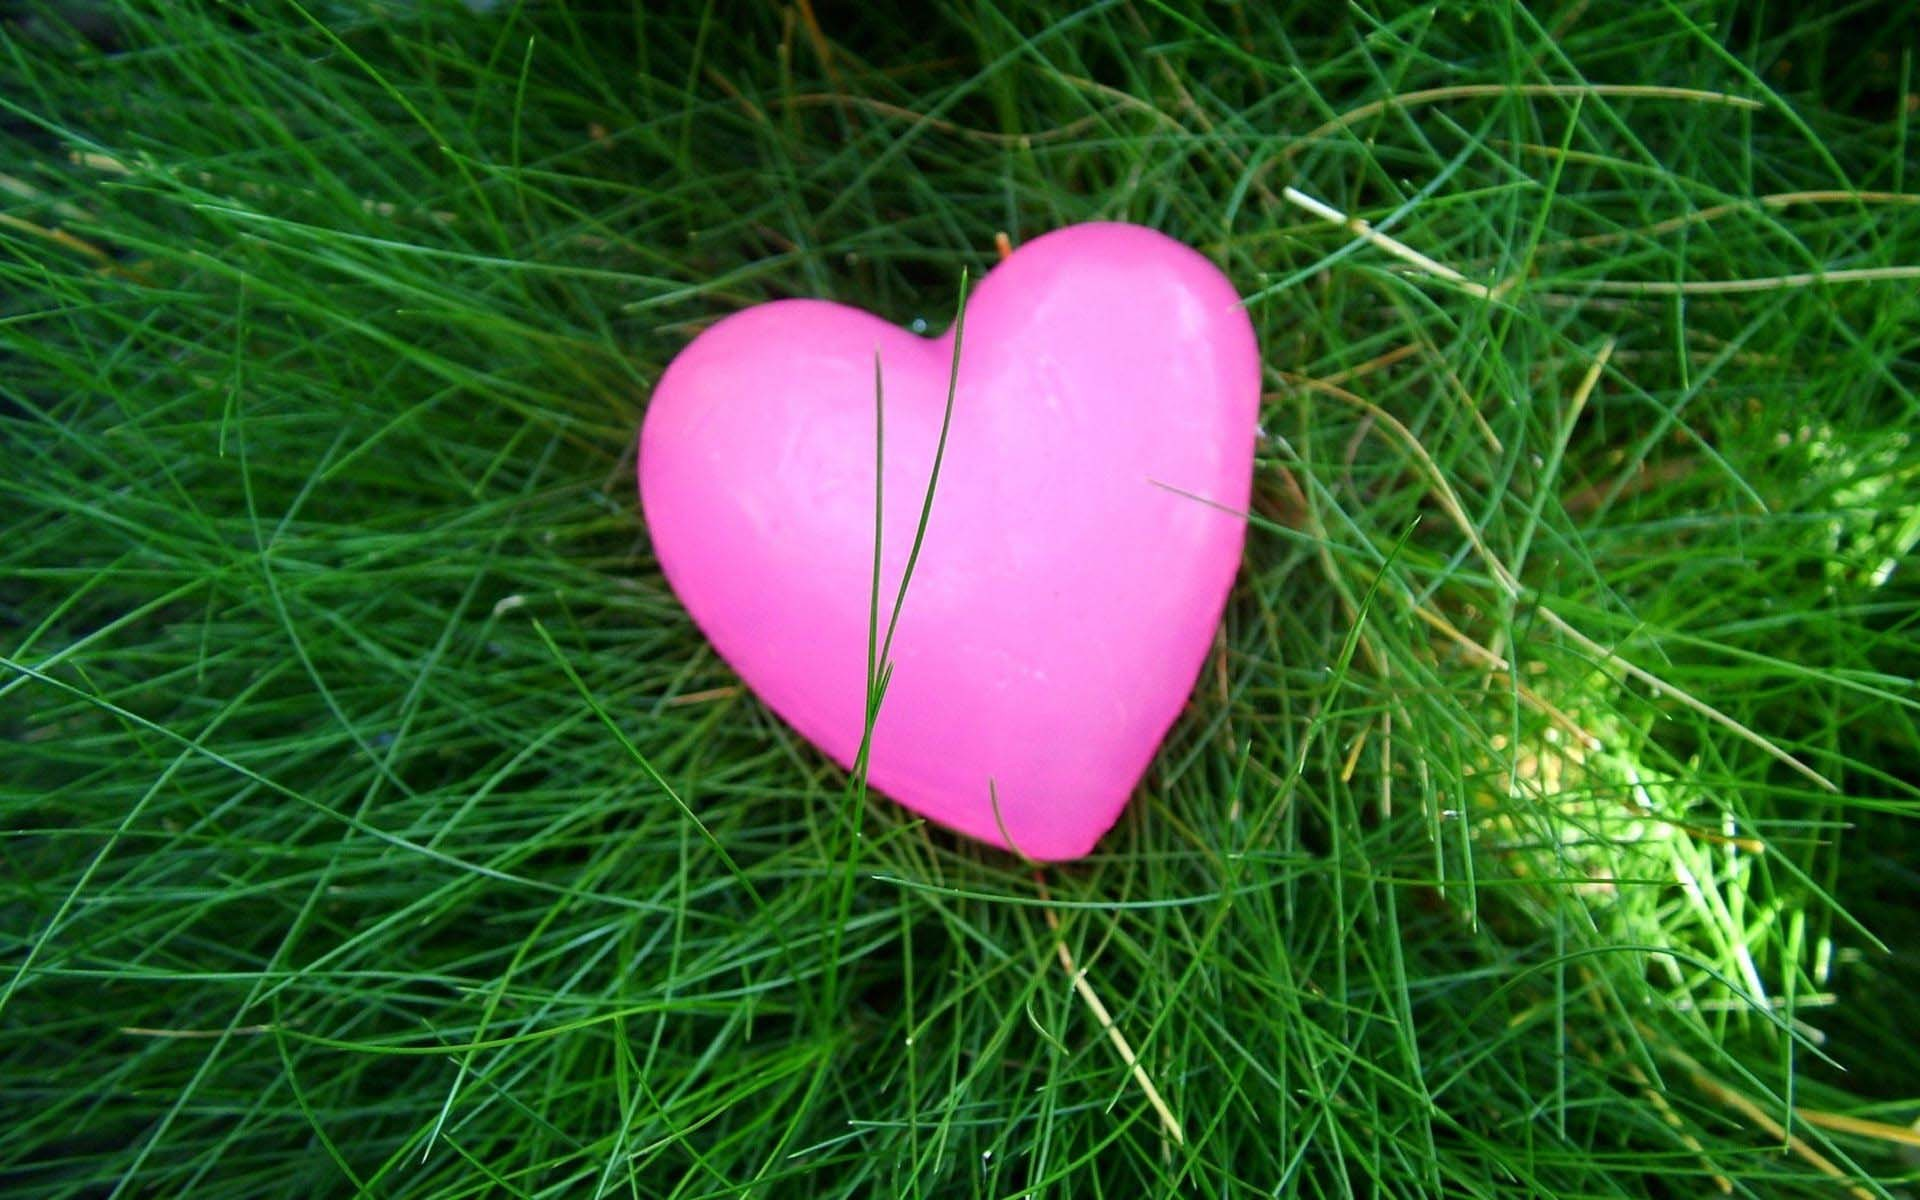 Pink Heart Wallpapers and Photos for Desktop